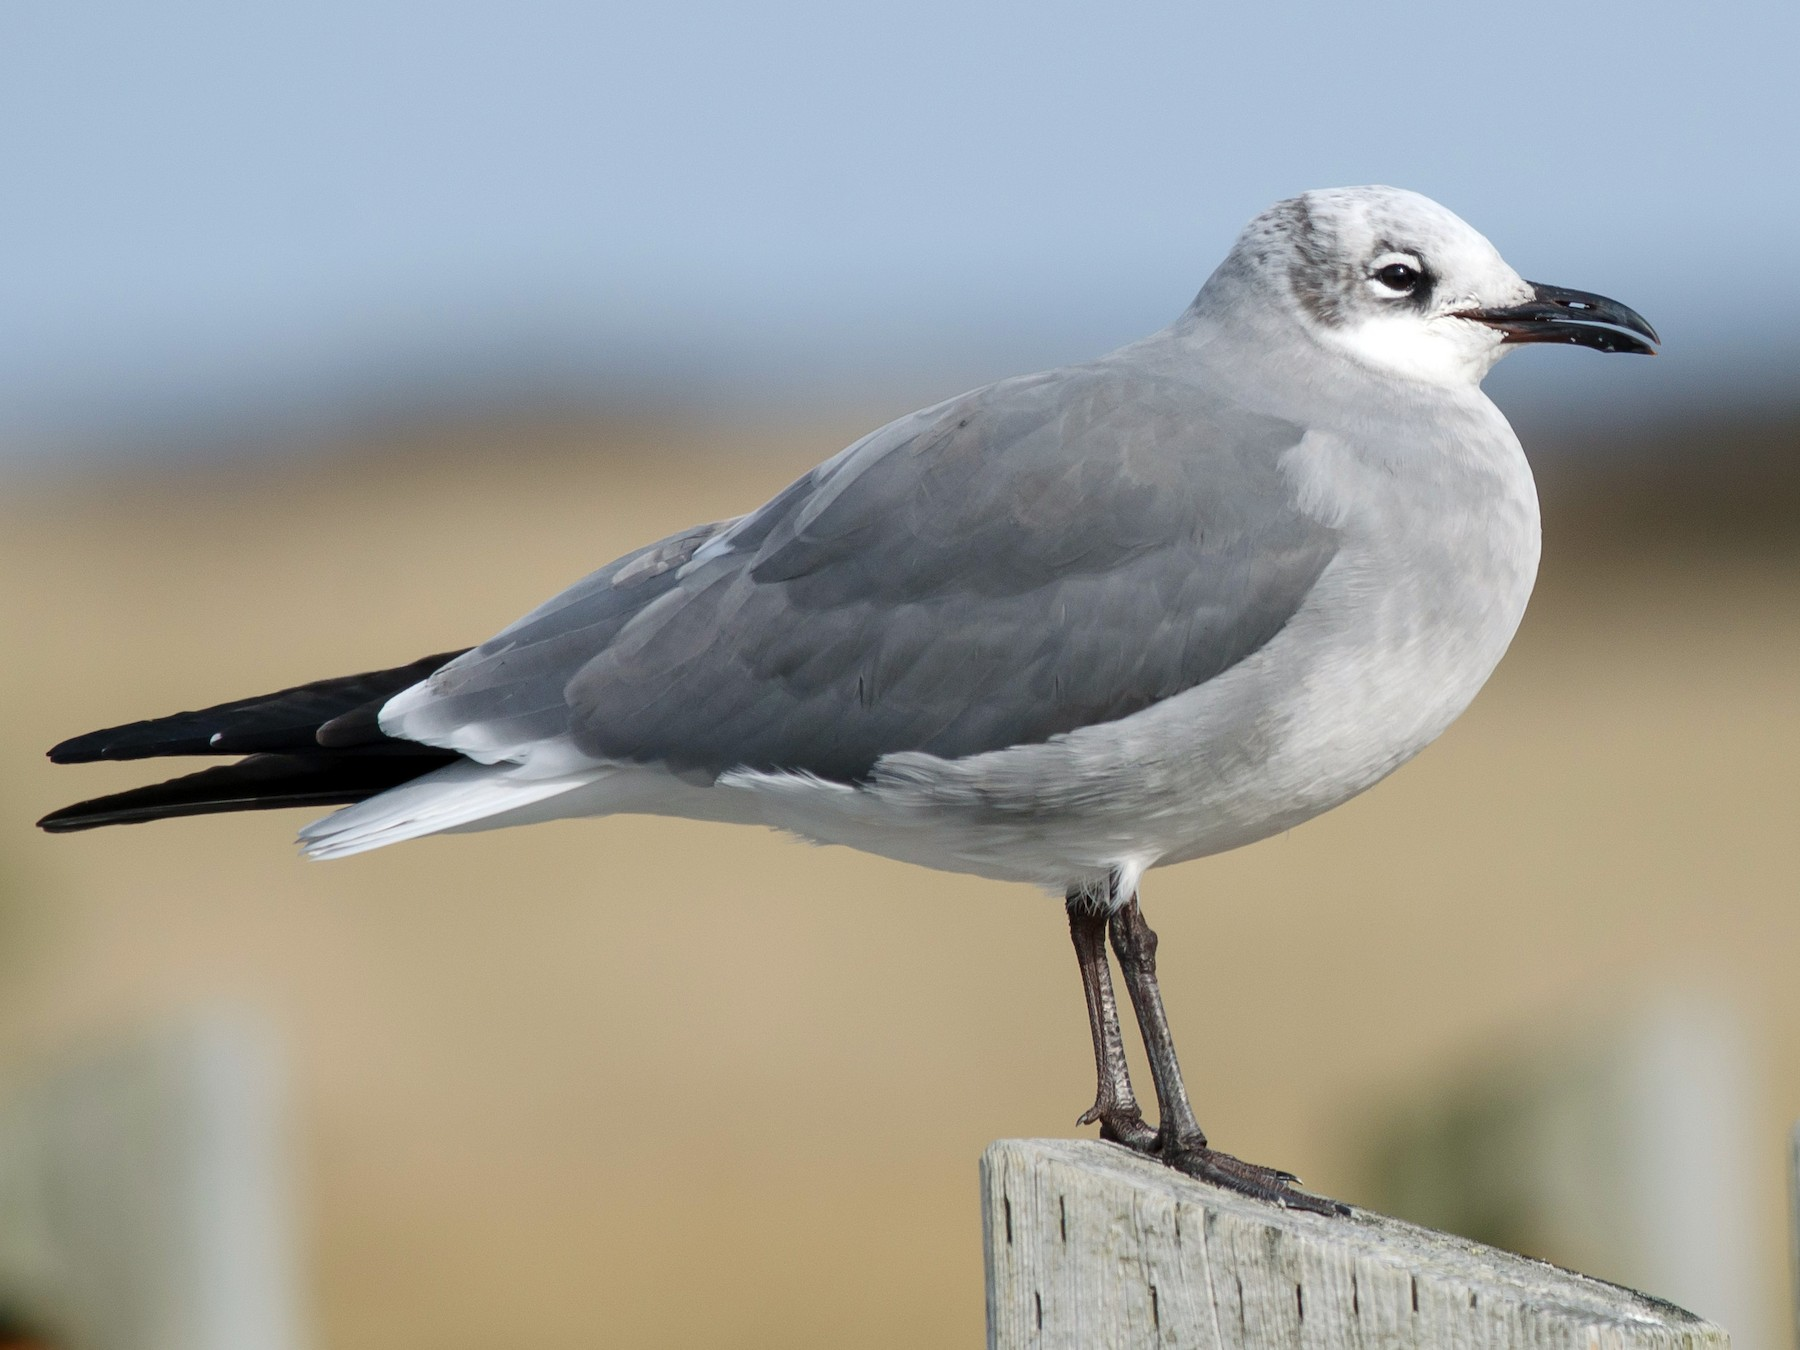 Laughing Gull - Alix d'Entremont